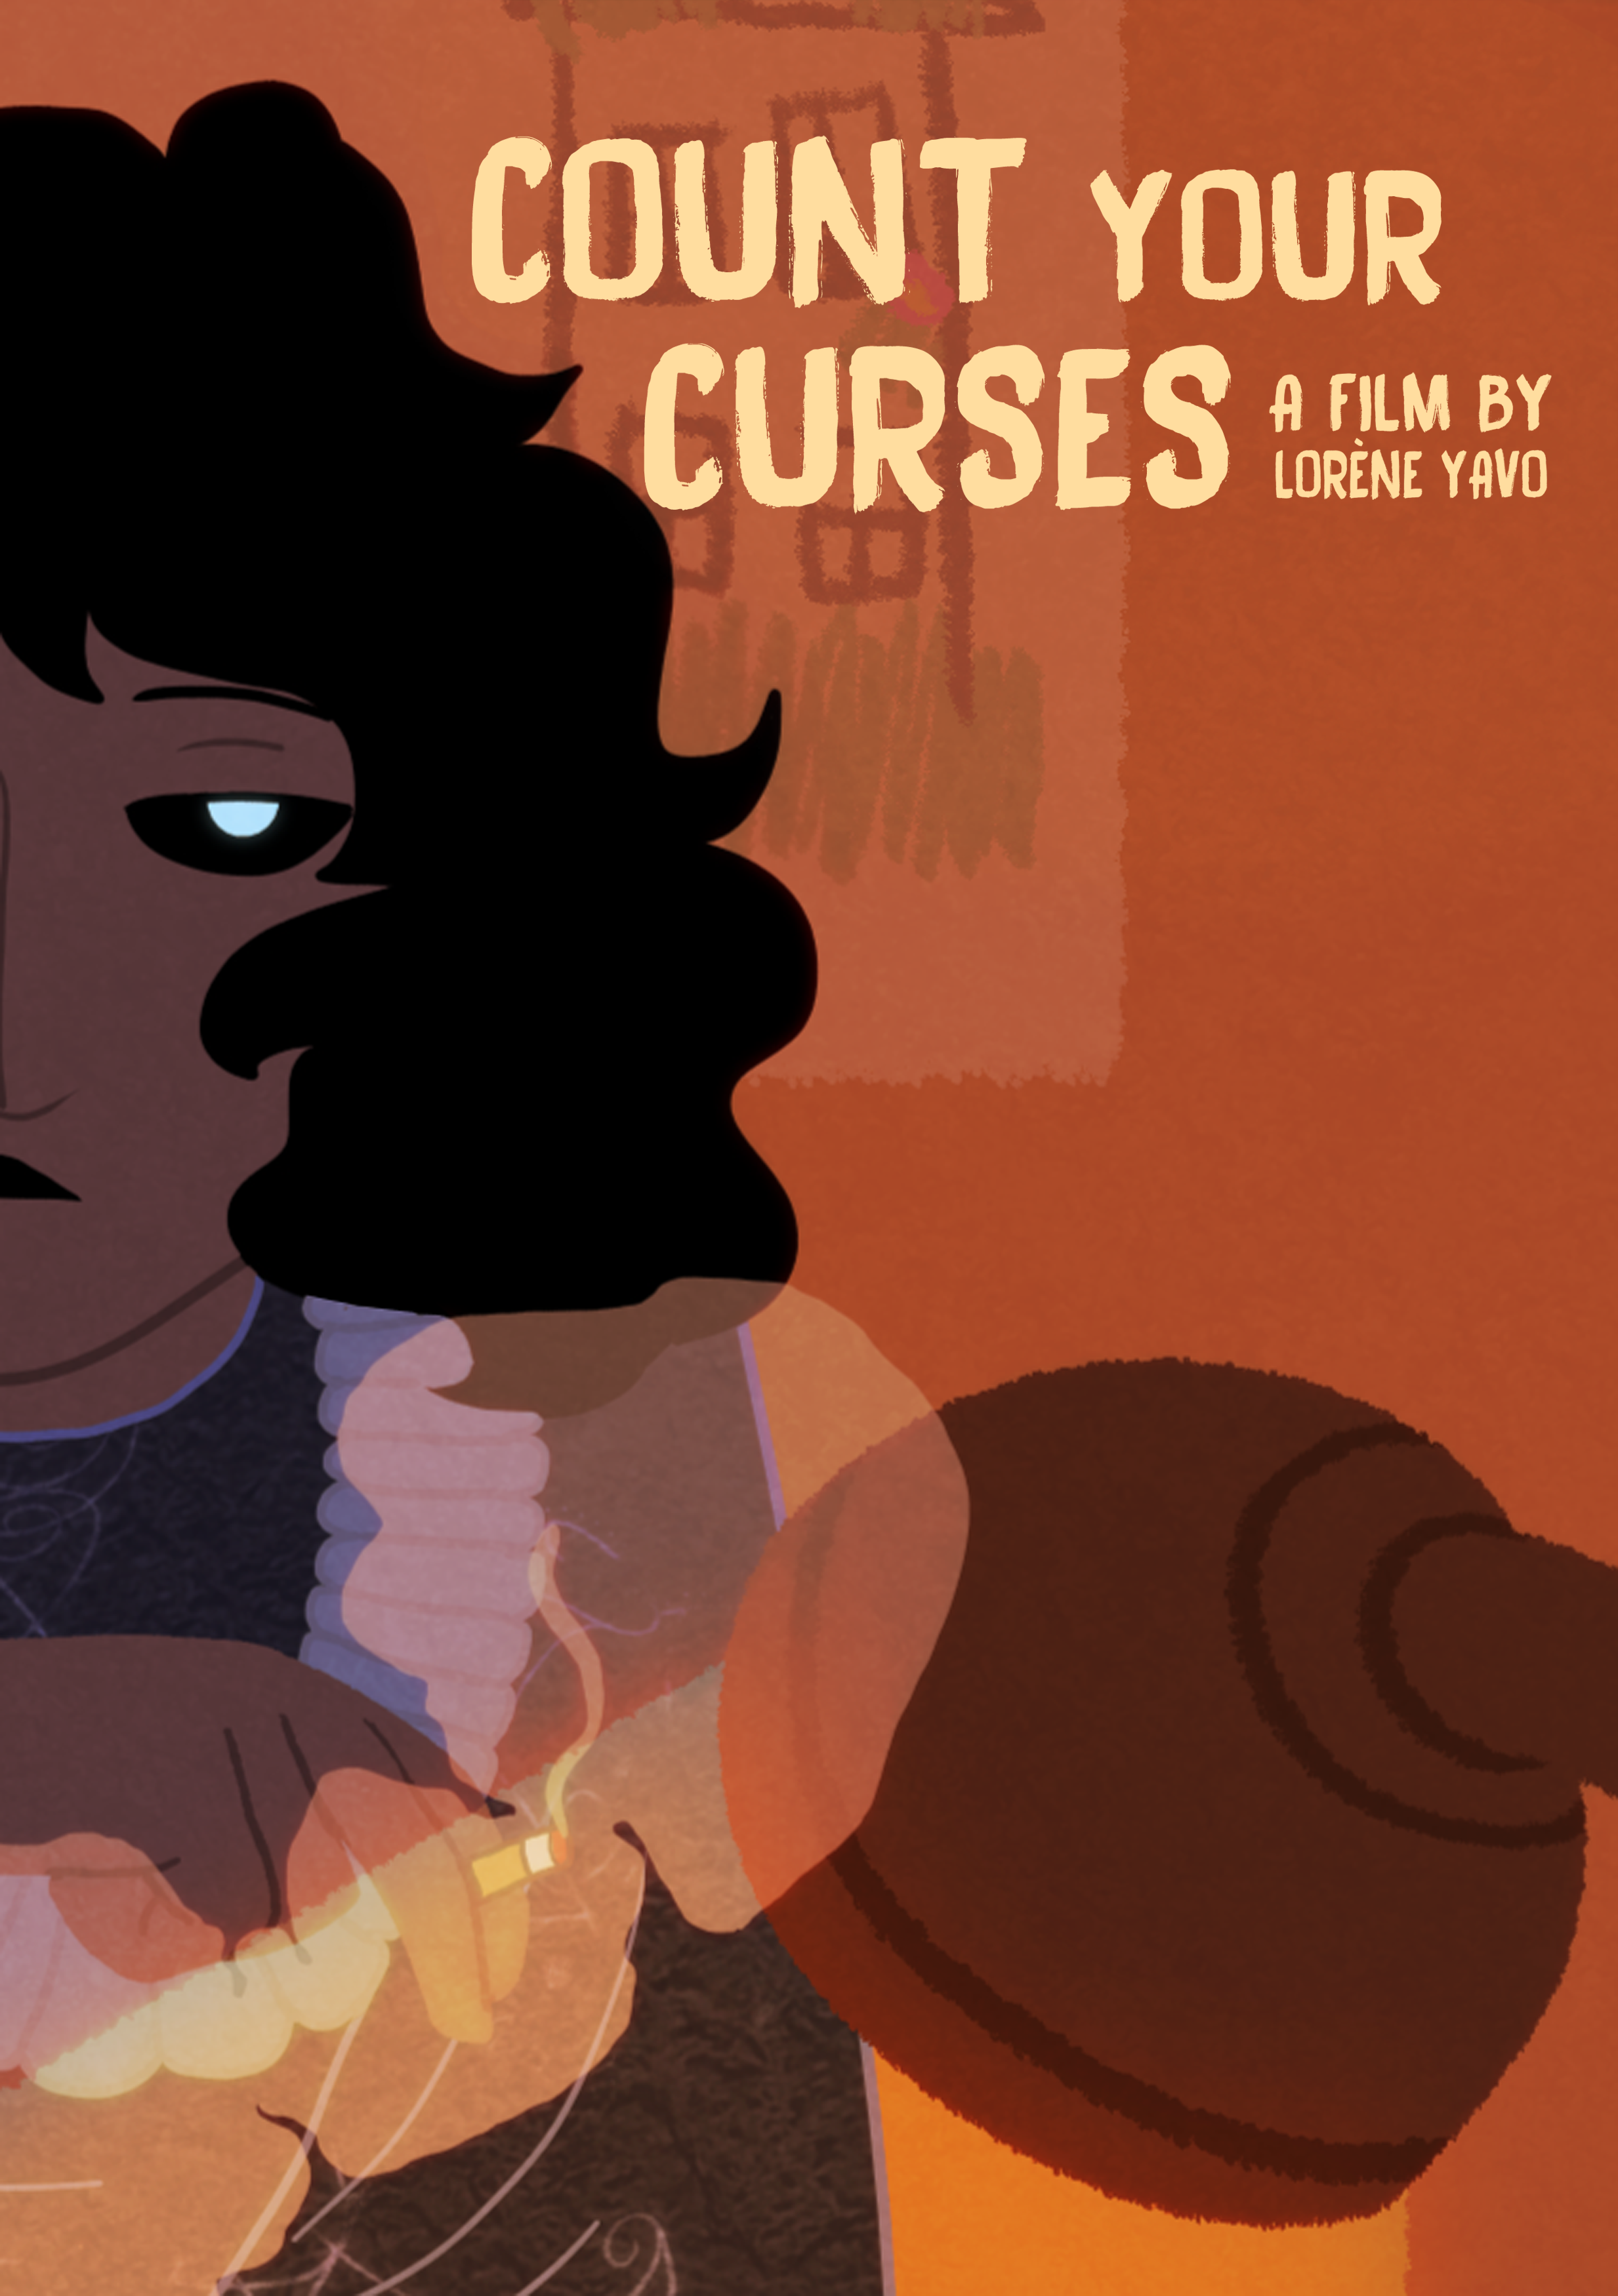 Count Your Curses poster